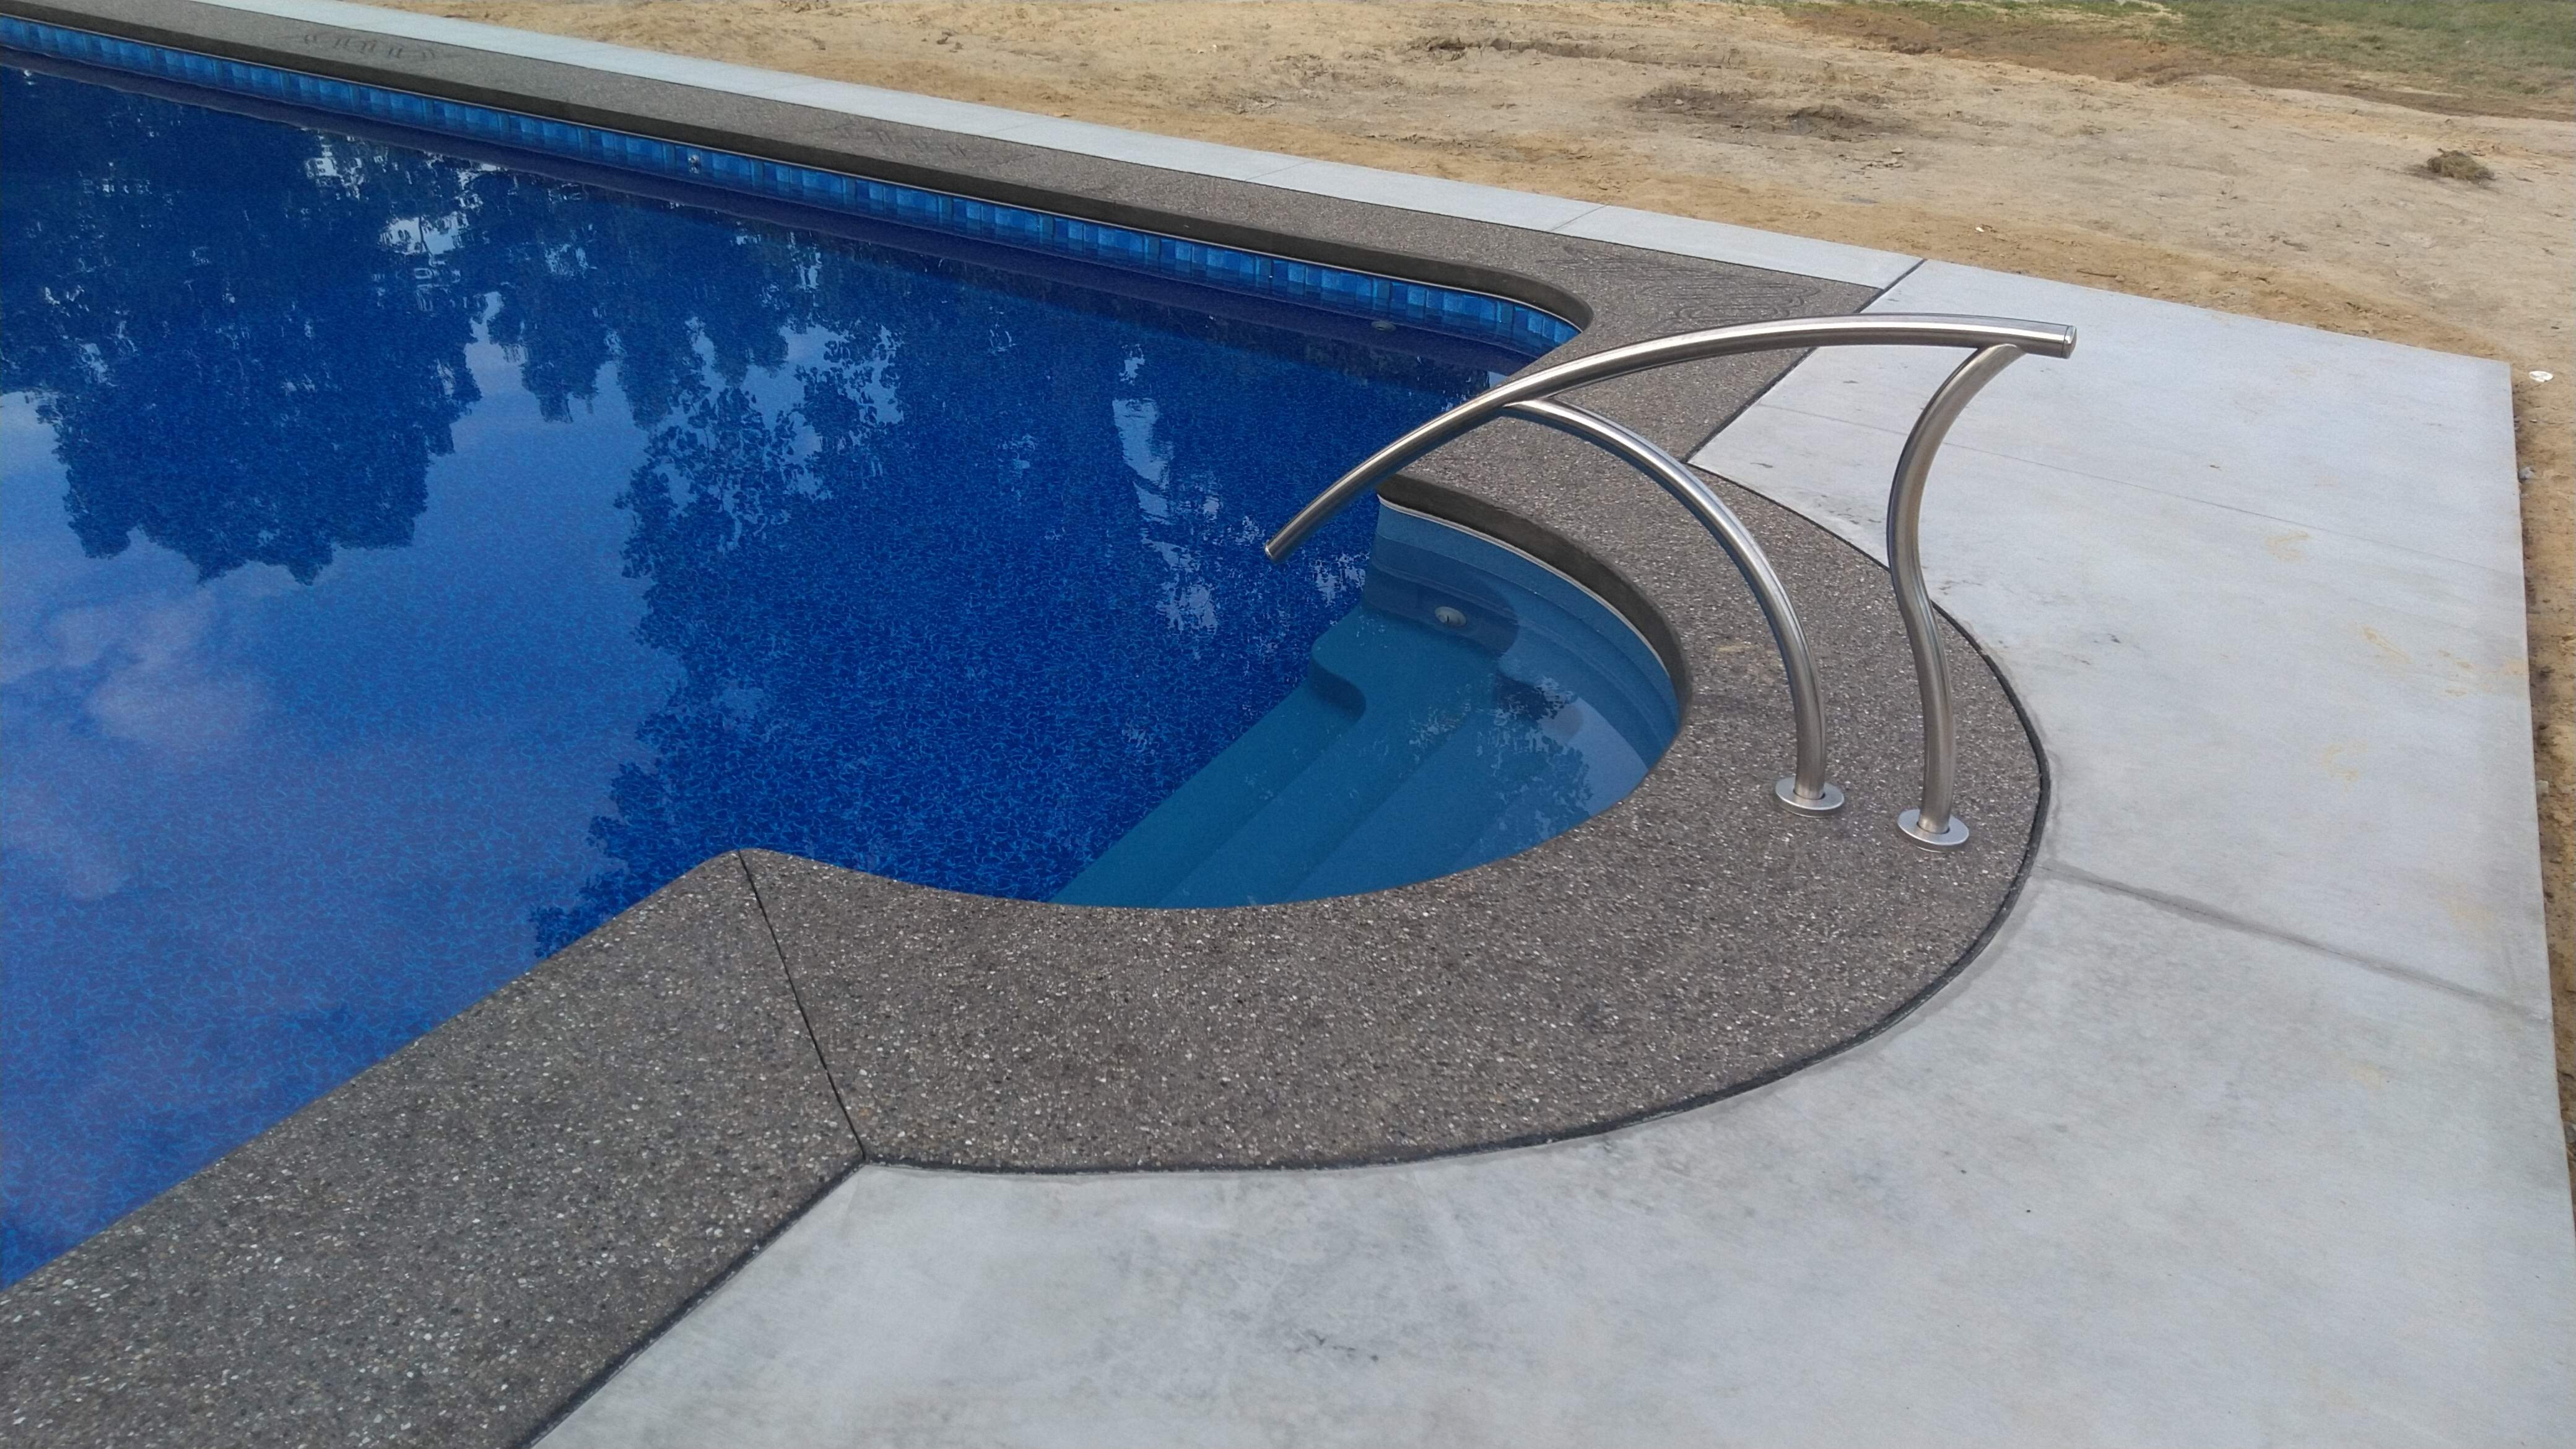 Exposed Agg Pool Coping